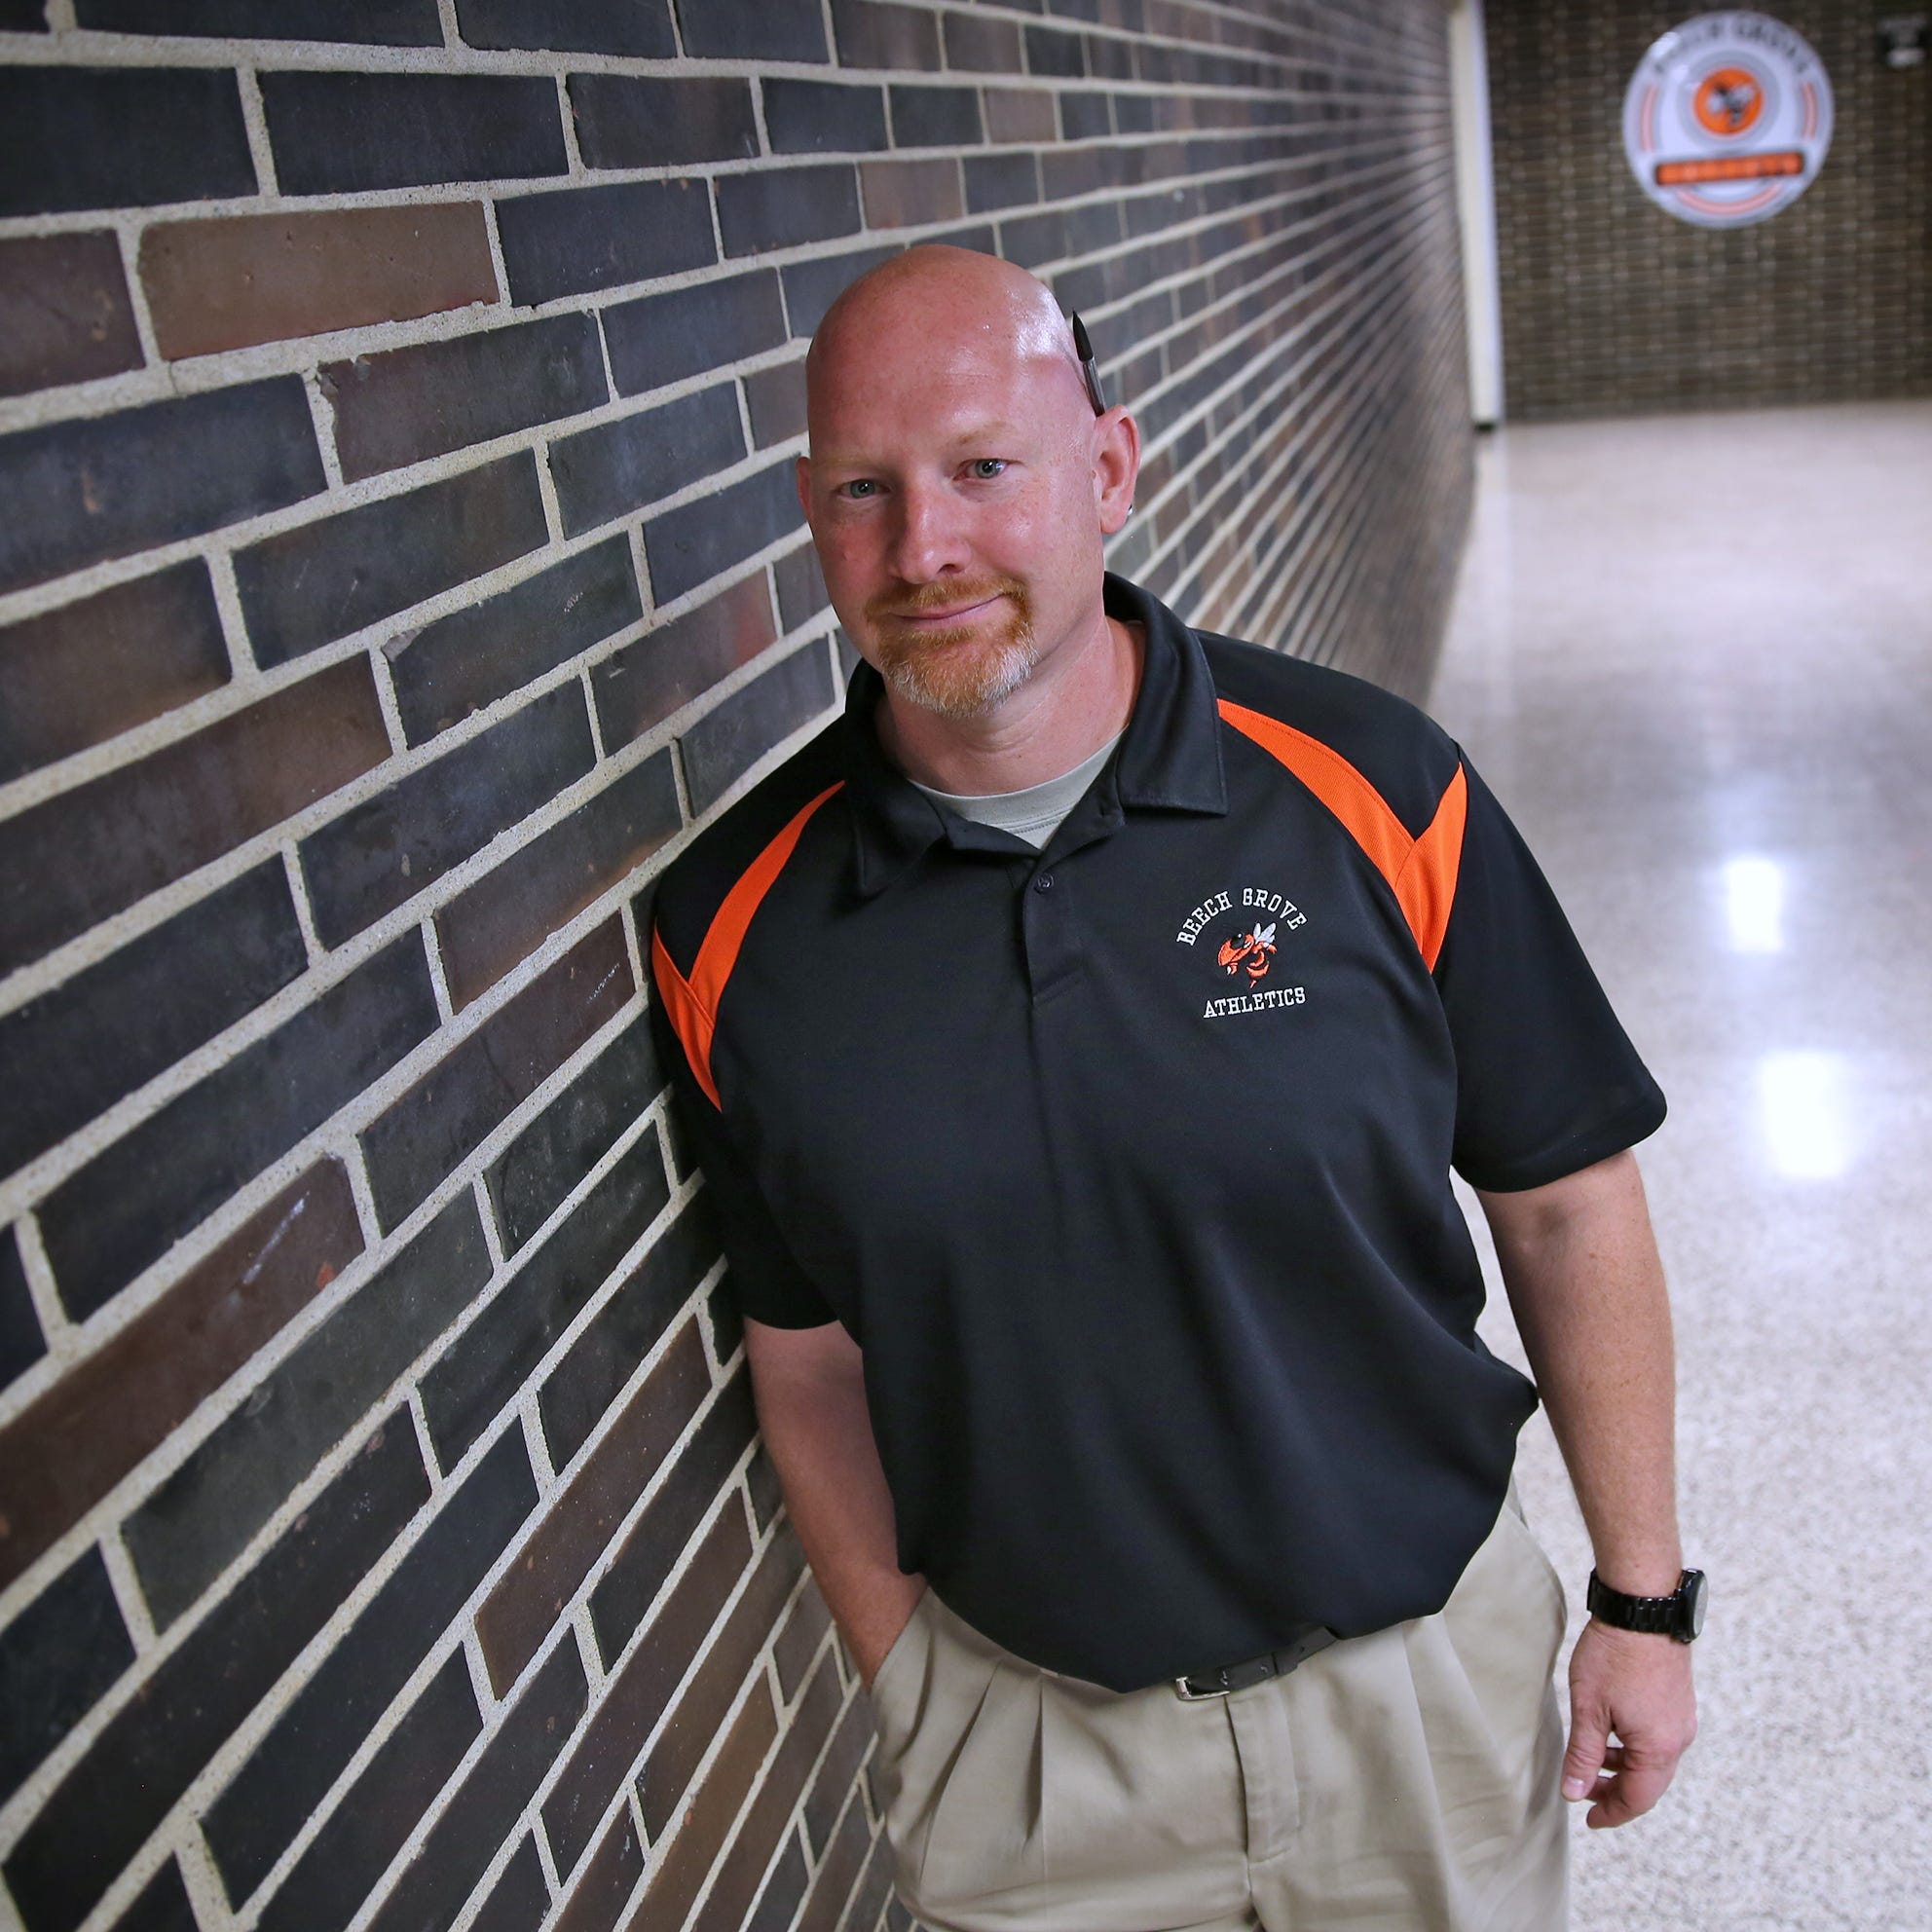 Beech Grove boys basketball coach Matt English died Monday morning during his third battle with brain cancer.